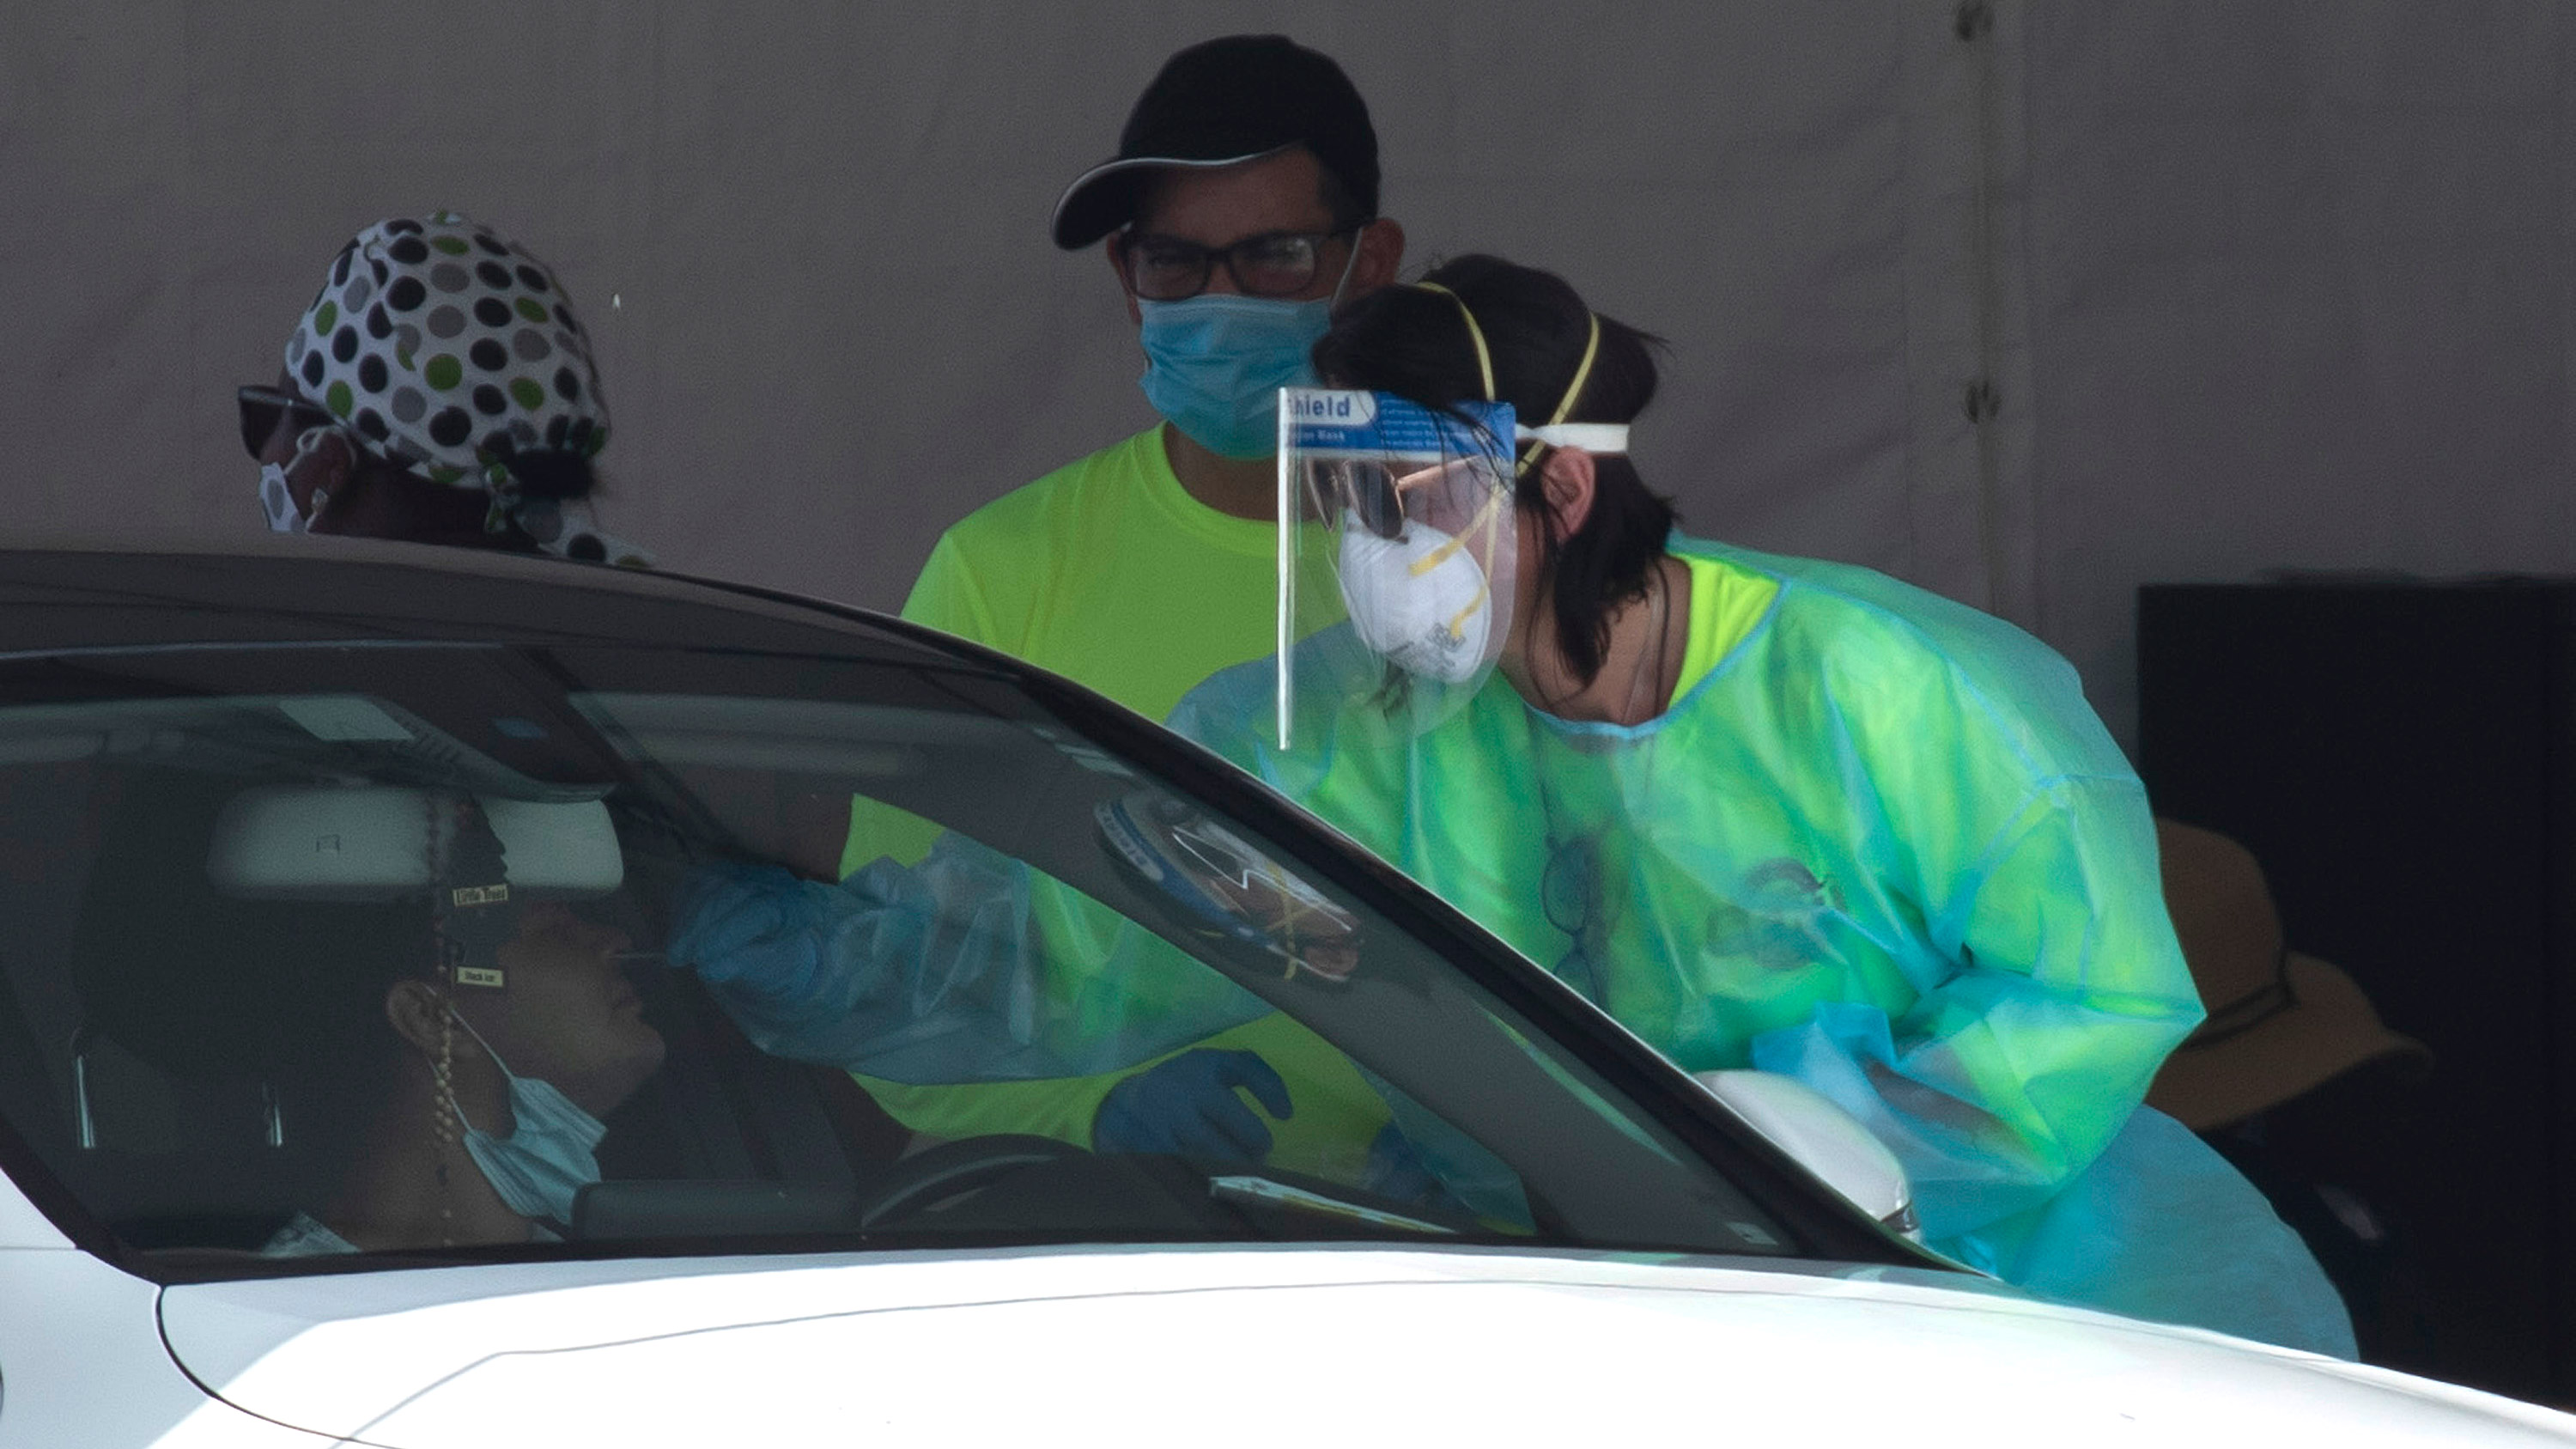 A health care worker tests a person for COVID-19 at the test site located in the Hard Rock Stadium parking lot on July 15 in Miami Gardens, Florida.